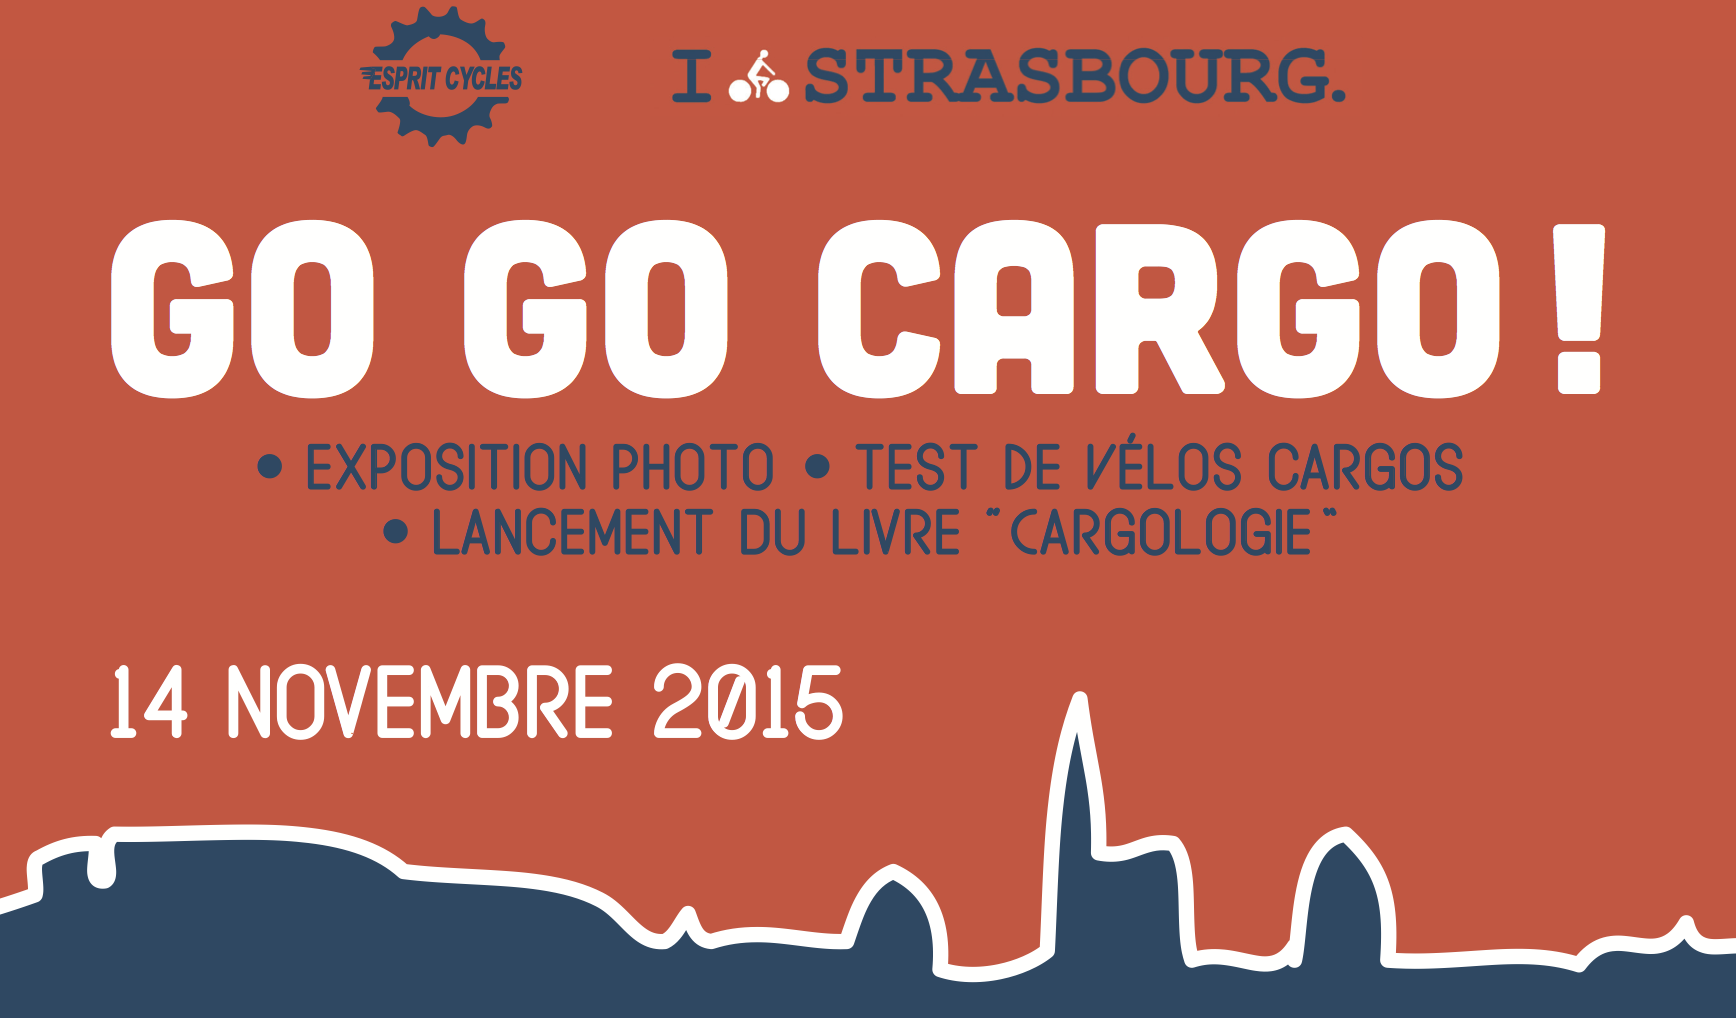 Affiche du Go Go Cargo, evenement Esprit Cycles